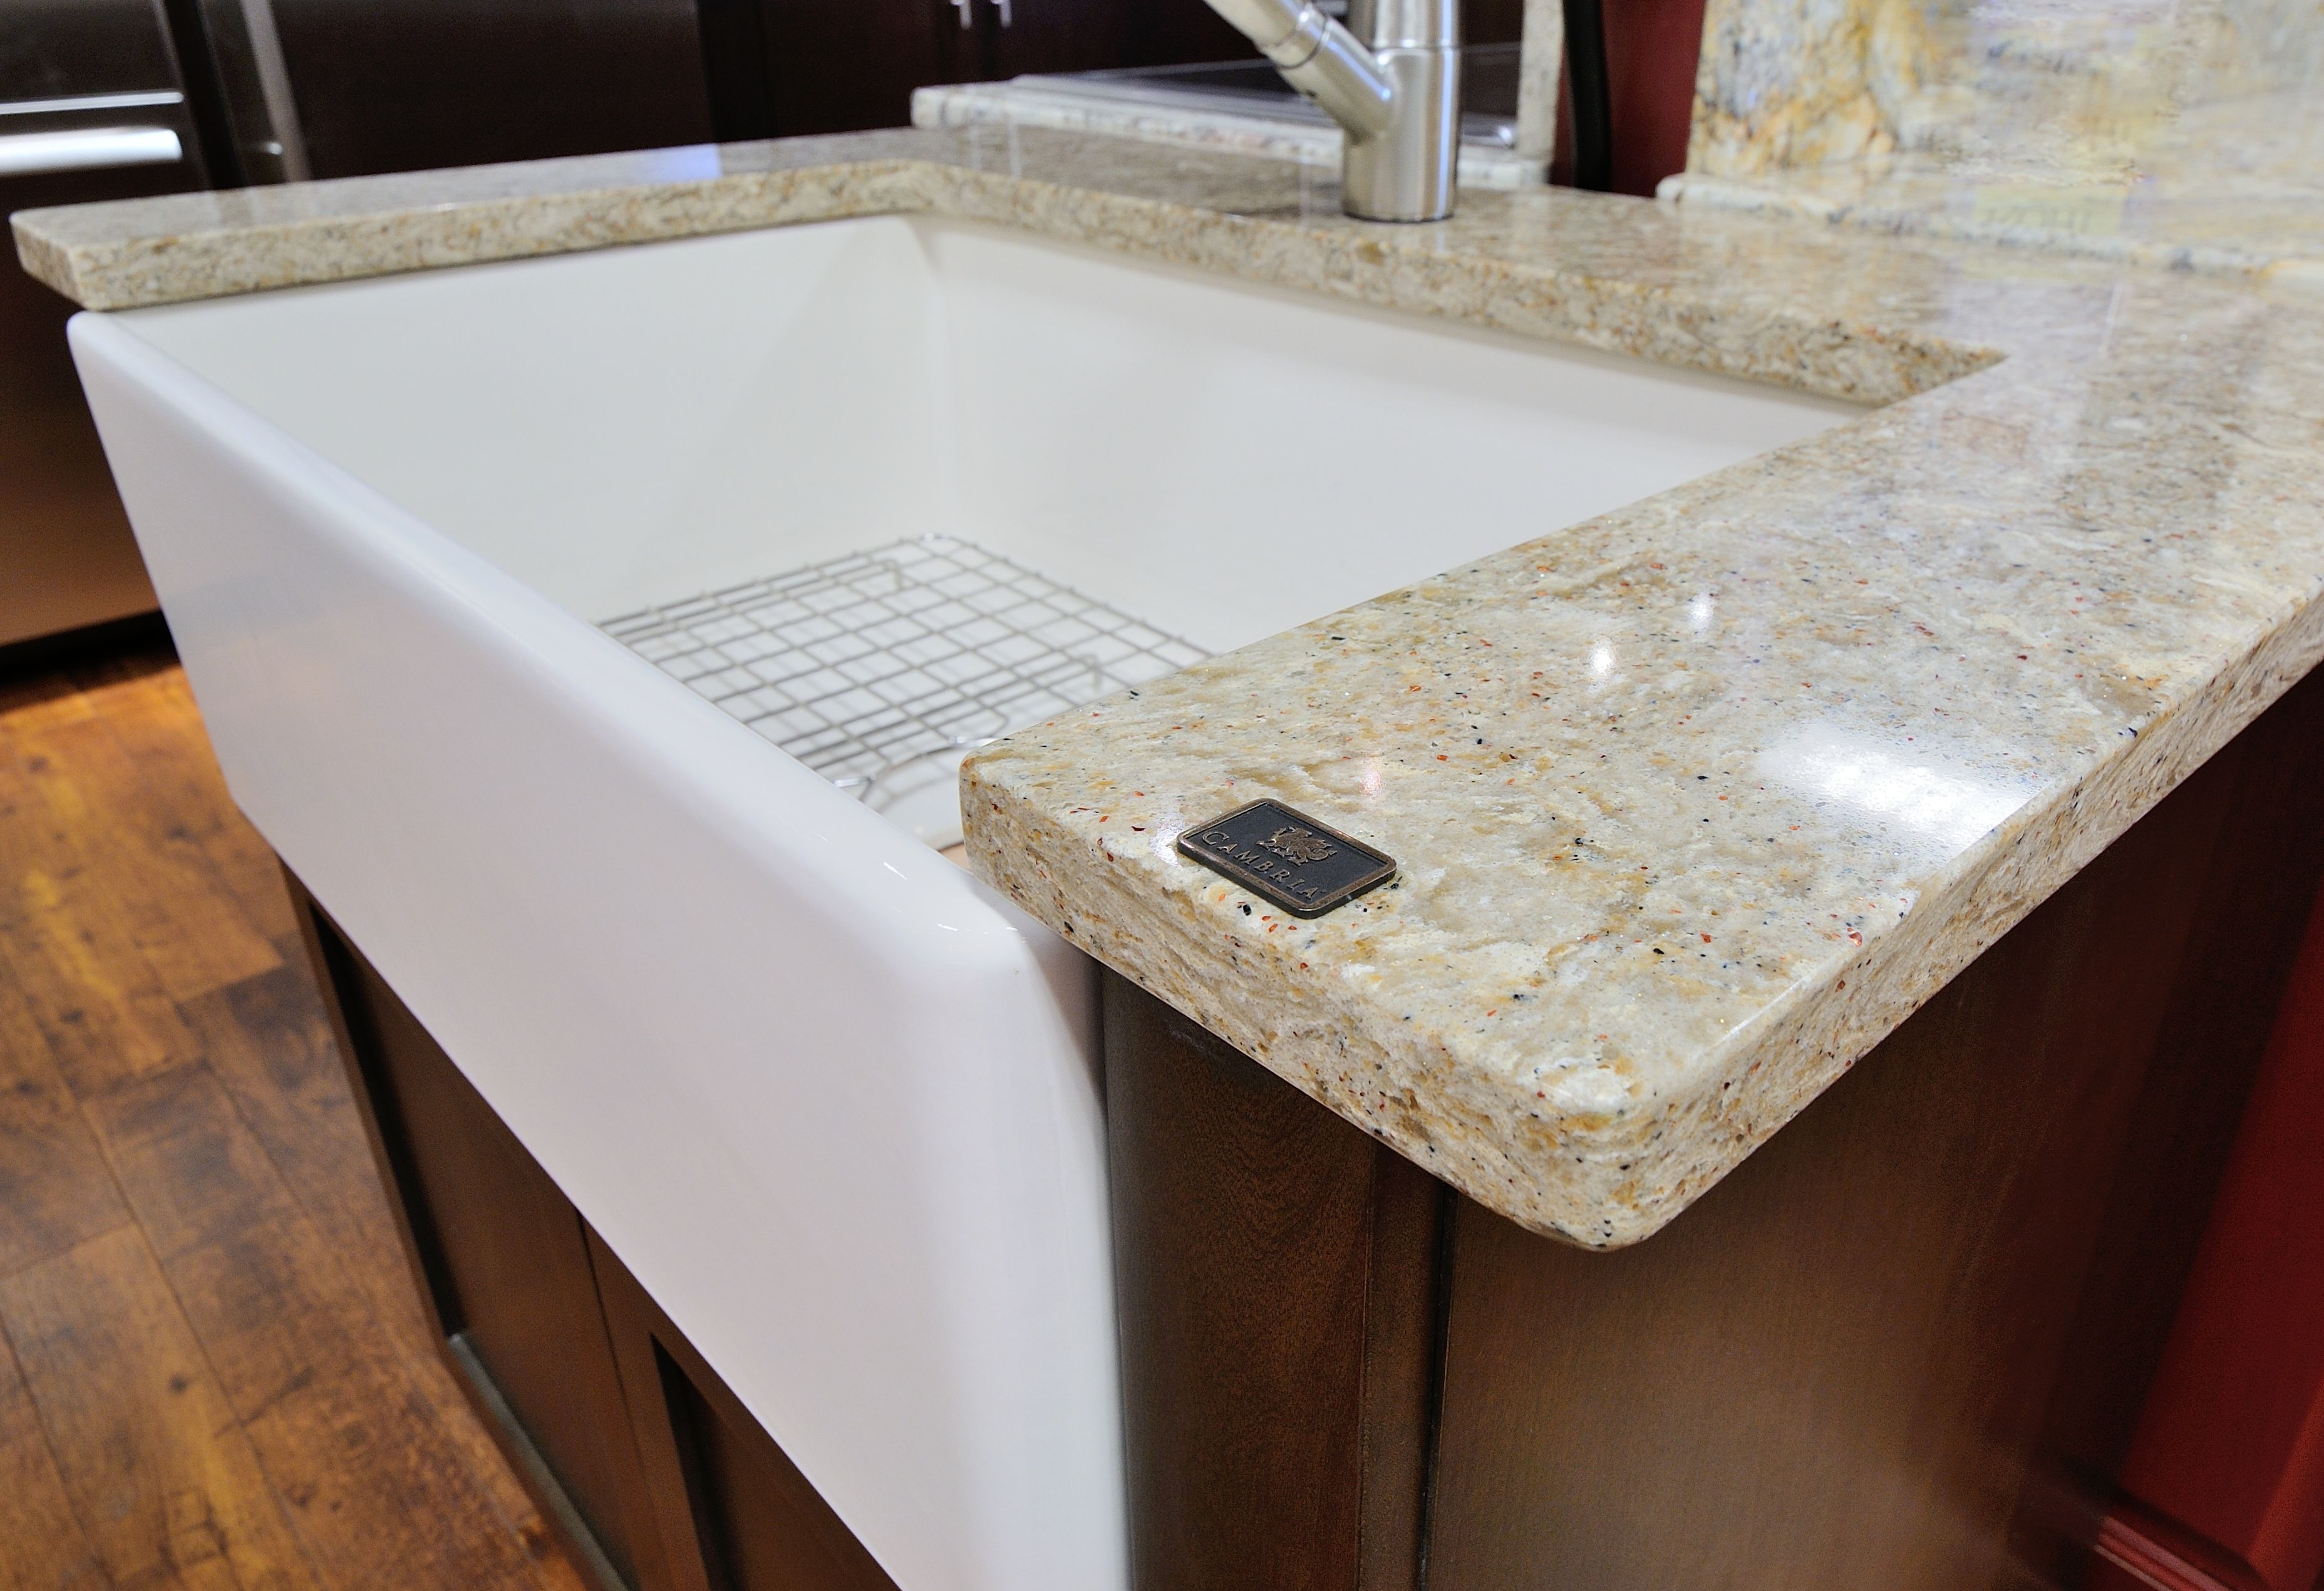 Cambria Berkeley countertop by Atlanta Kitchen in Sewell Showroom